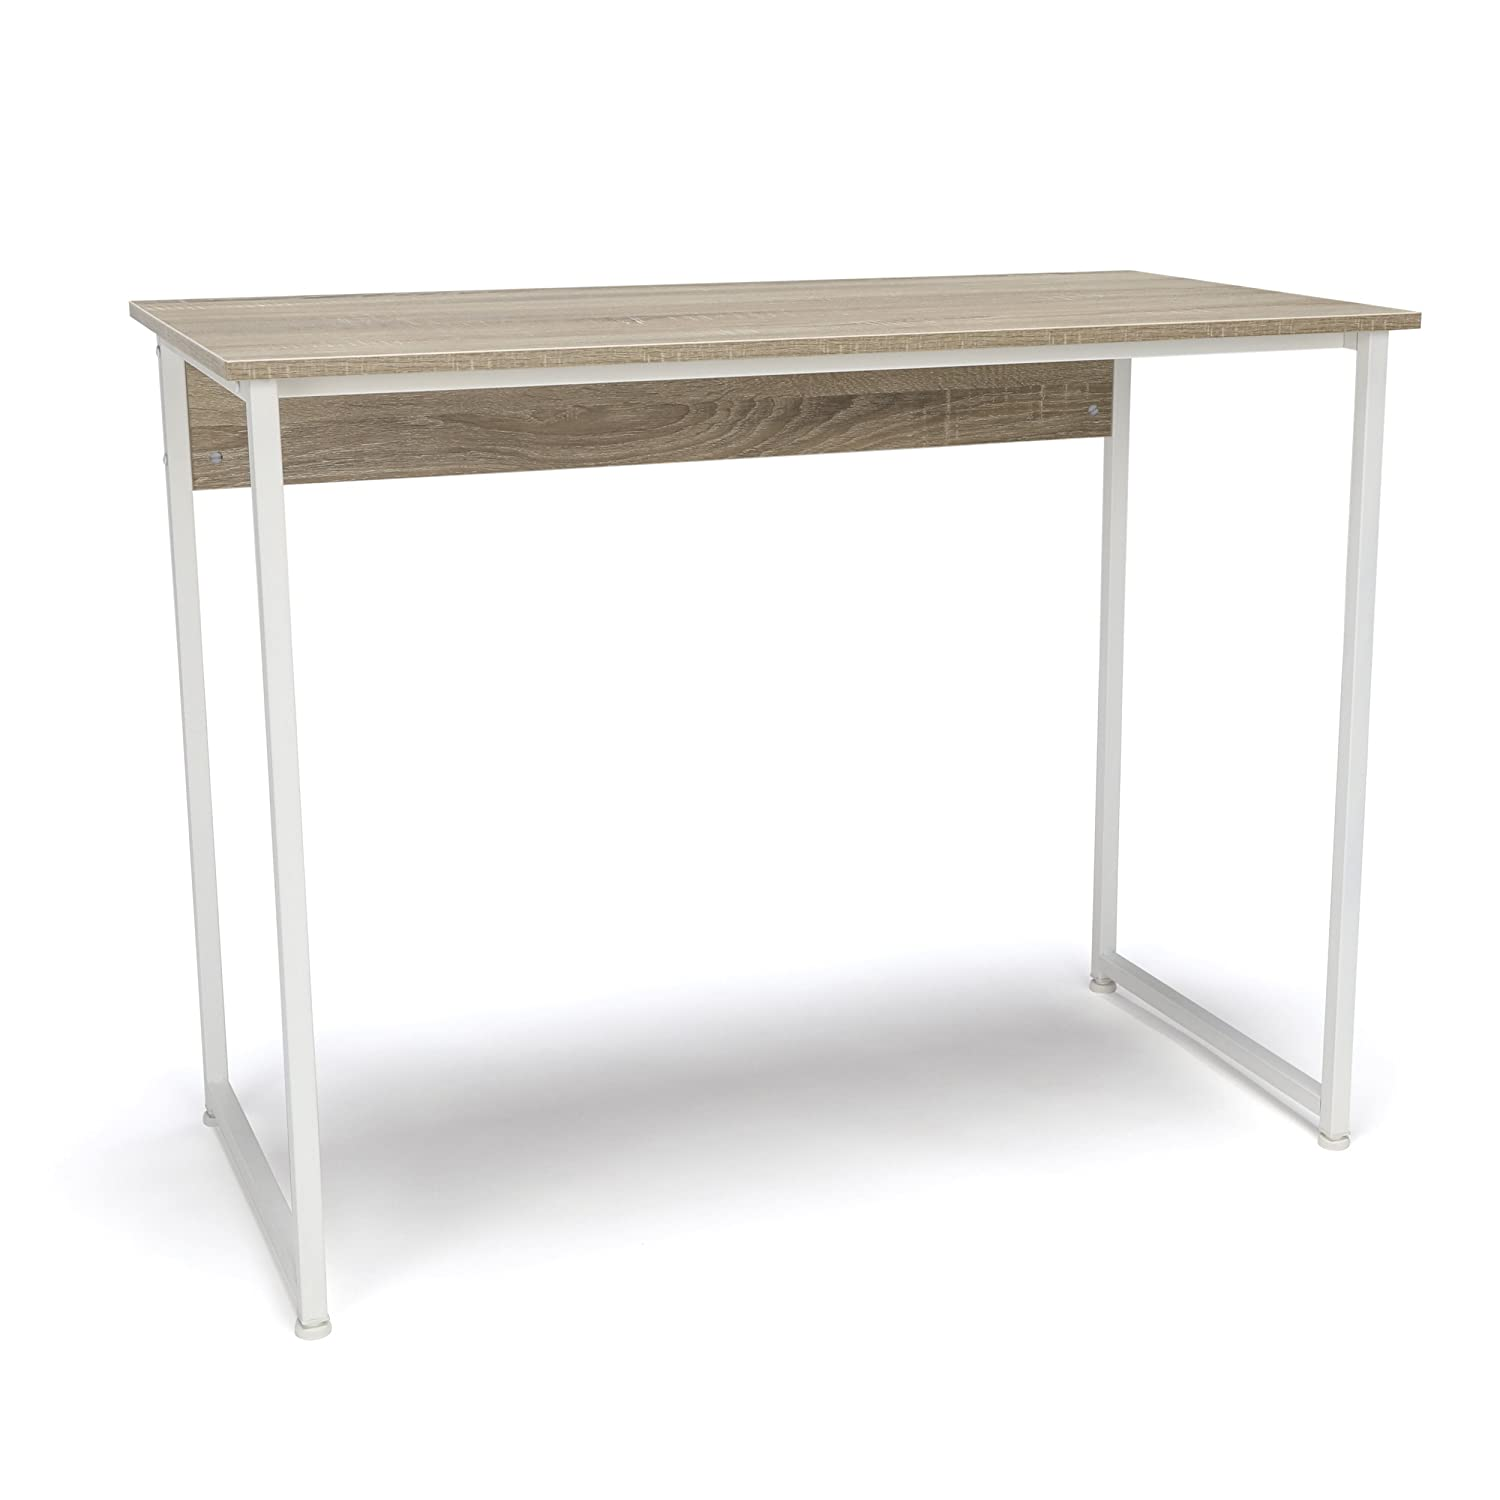 OFM Essentials Collection Office Desk with Metal Legs - Modern Computer Desk and Workstation, White/Natural